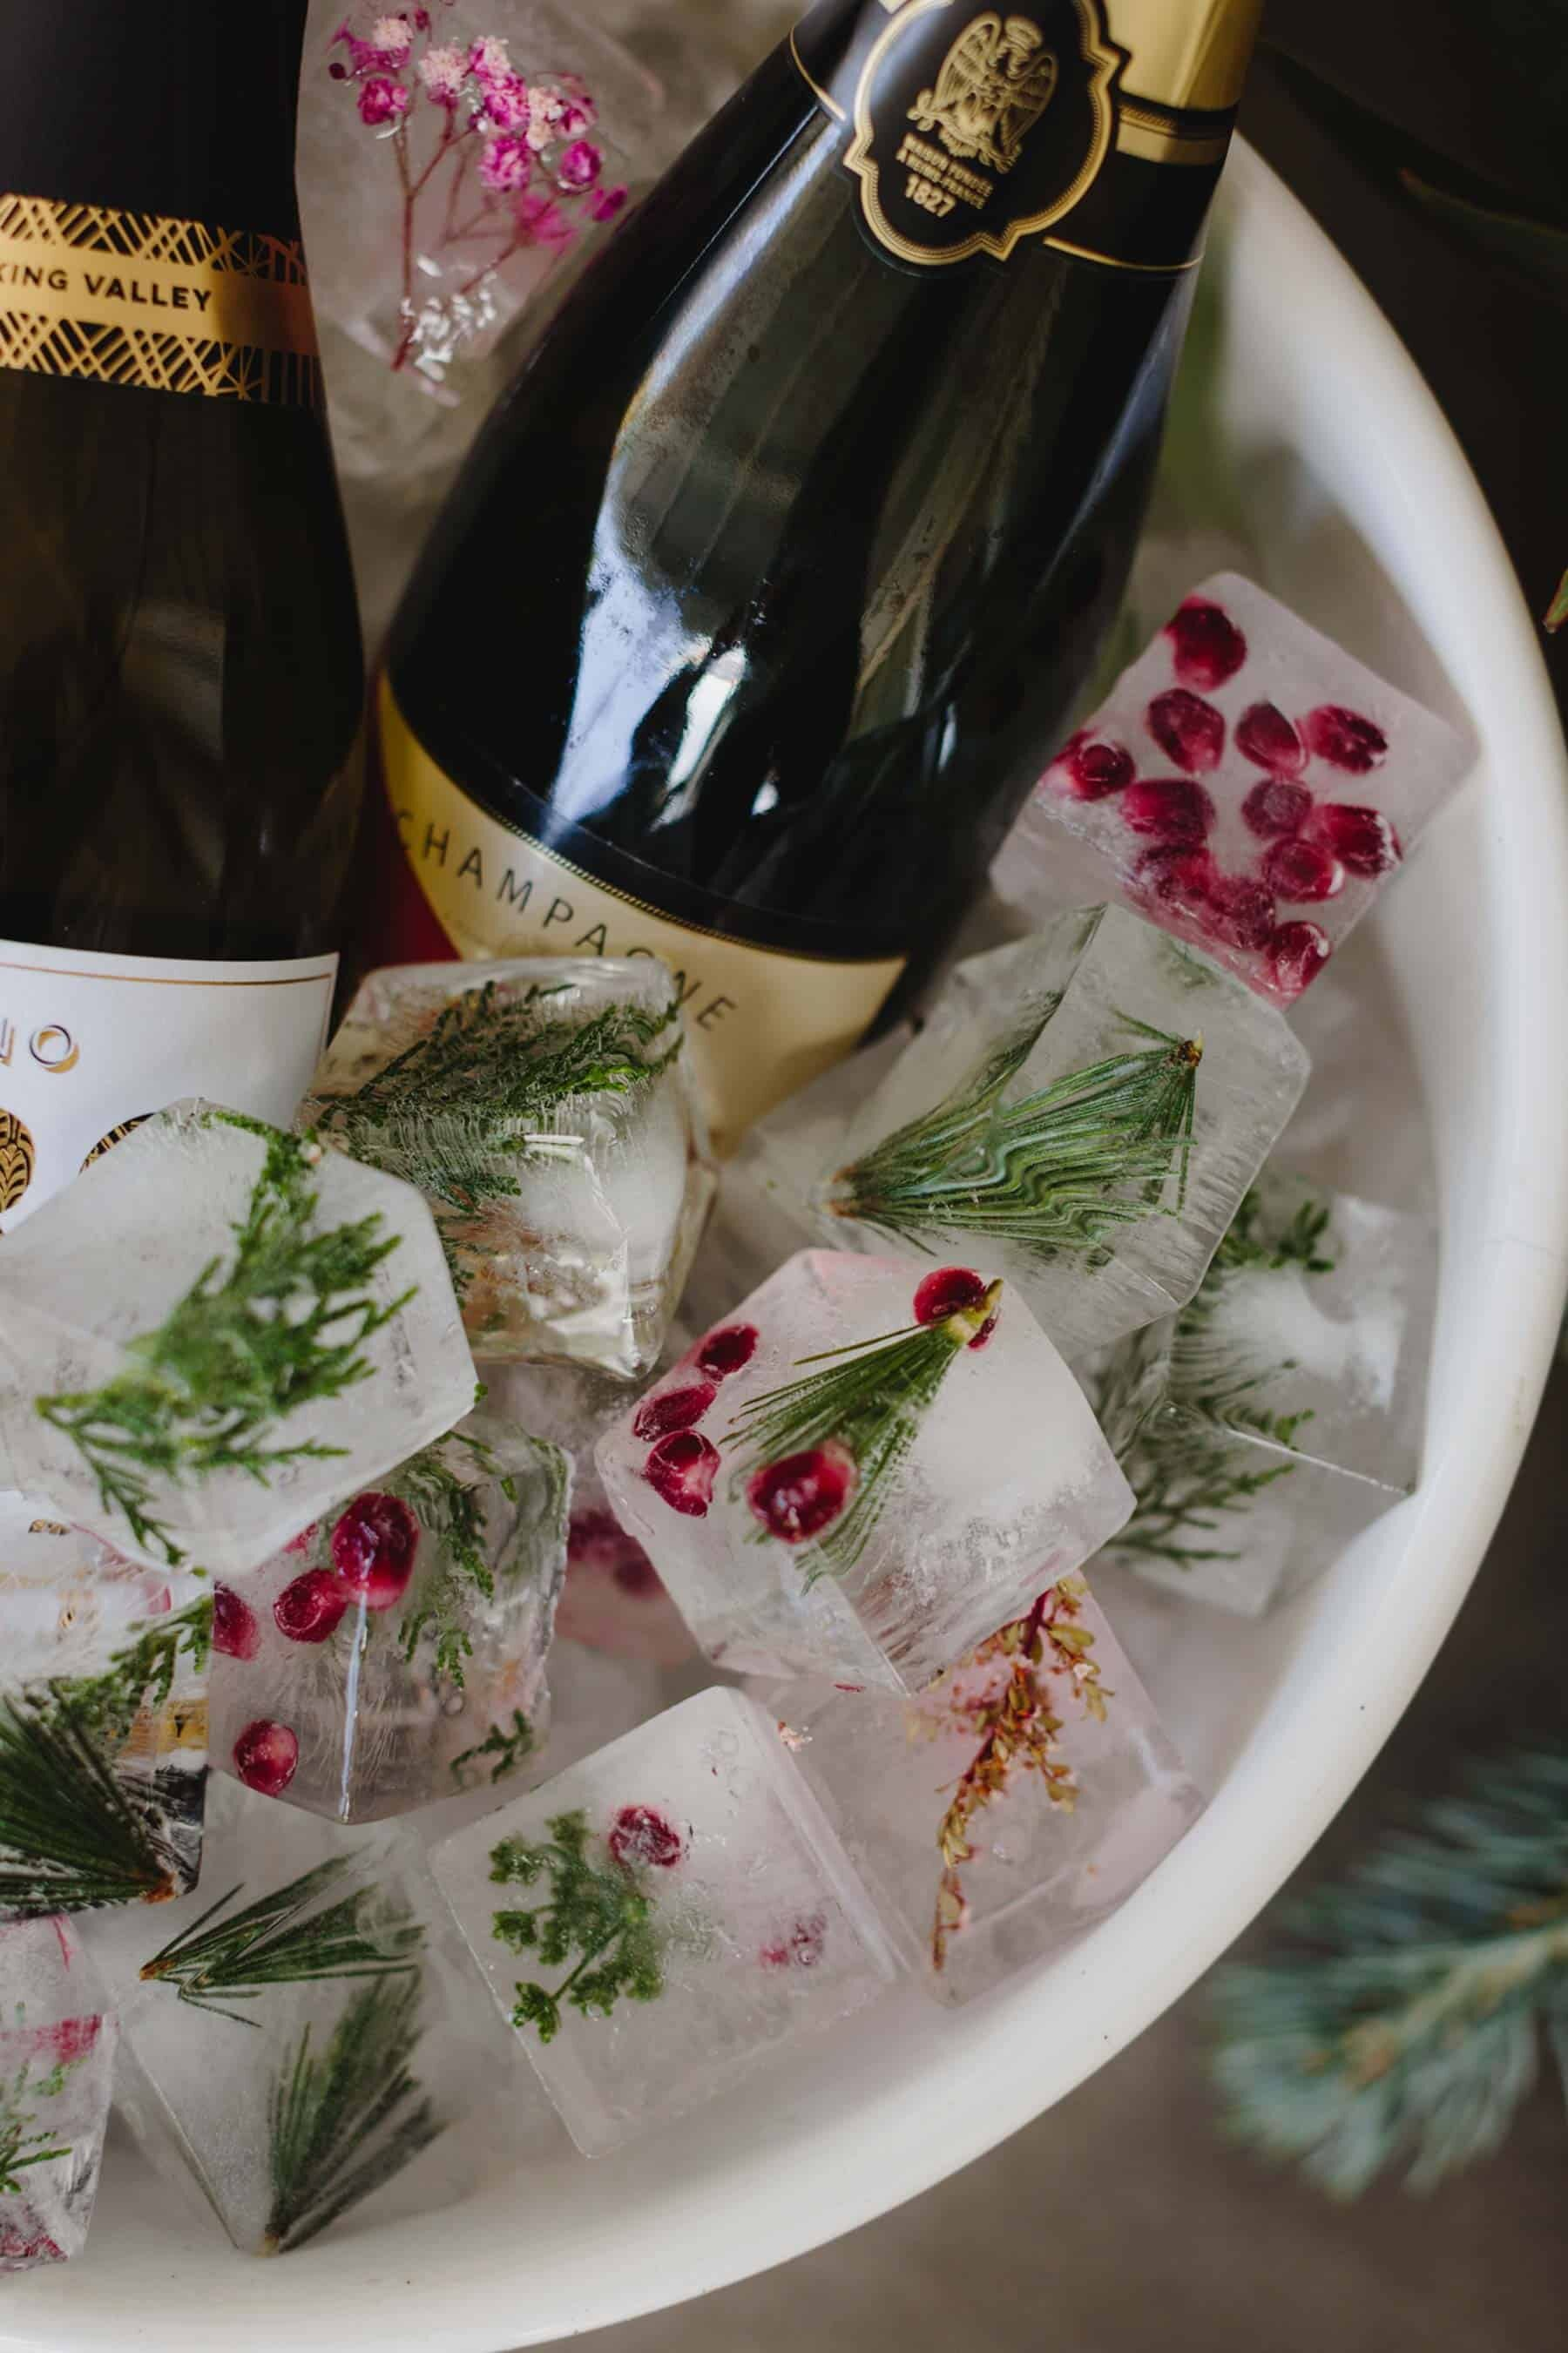 Christmas ice blocks with pine, berries and edible flowers